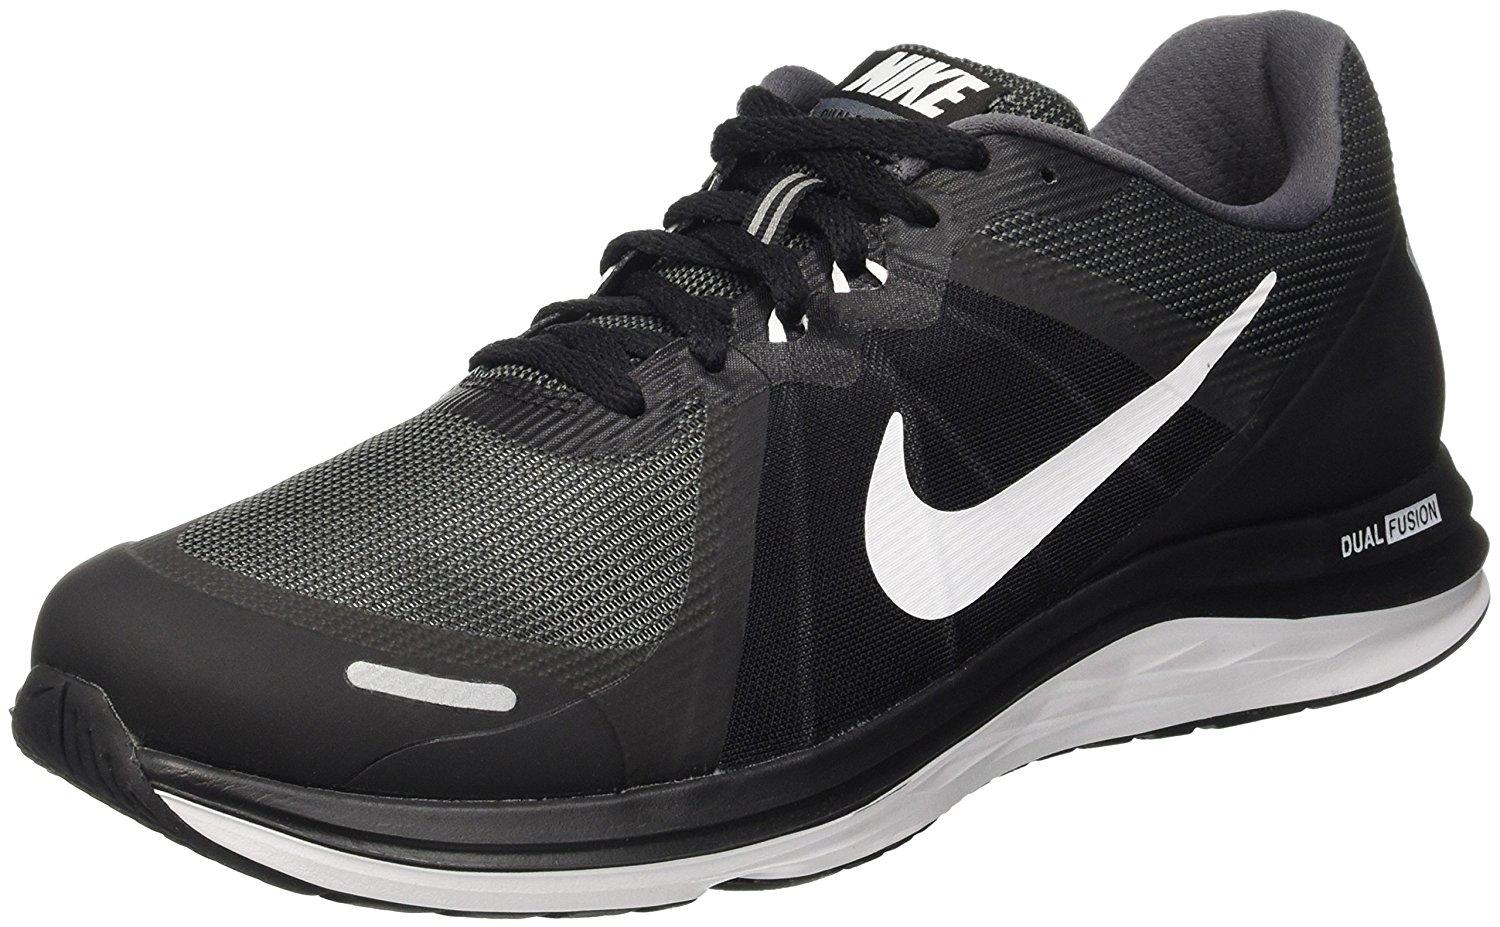 Nike Sport Shoes Deals